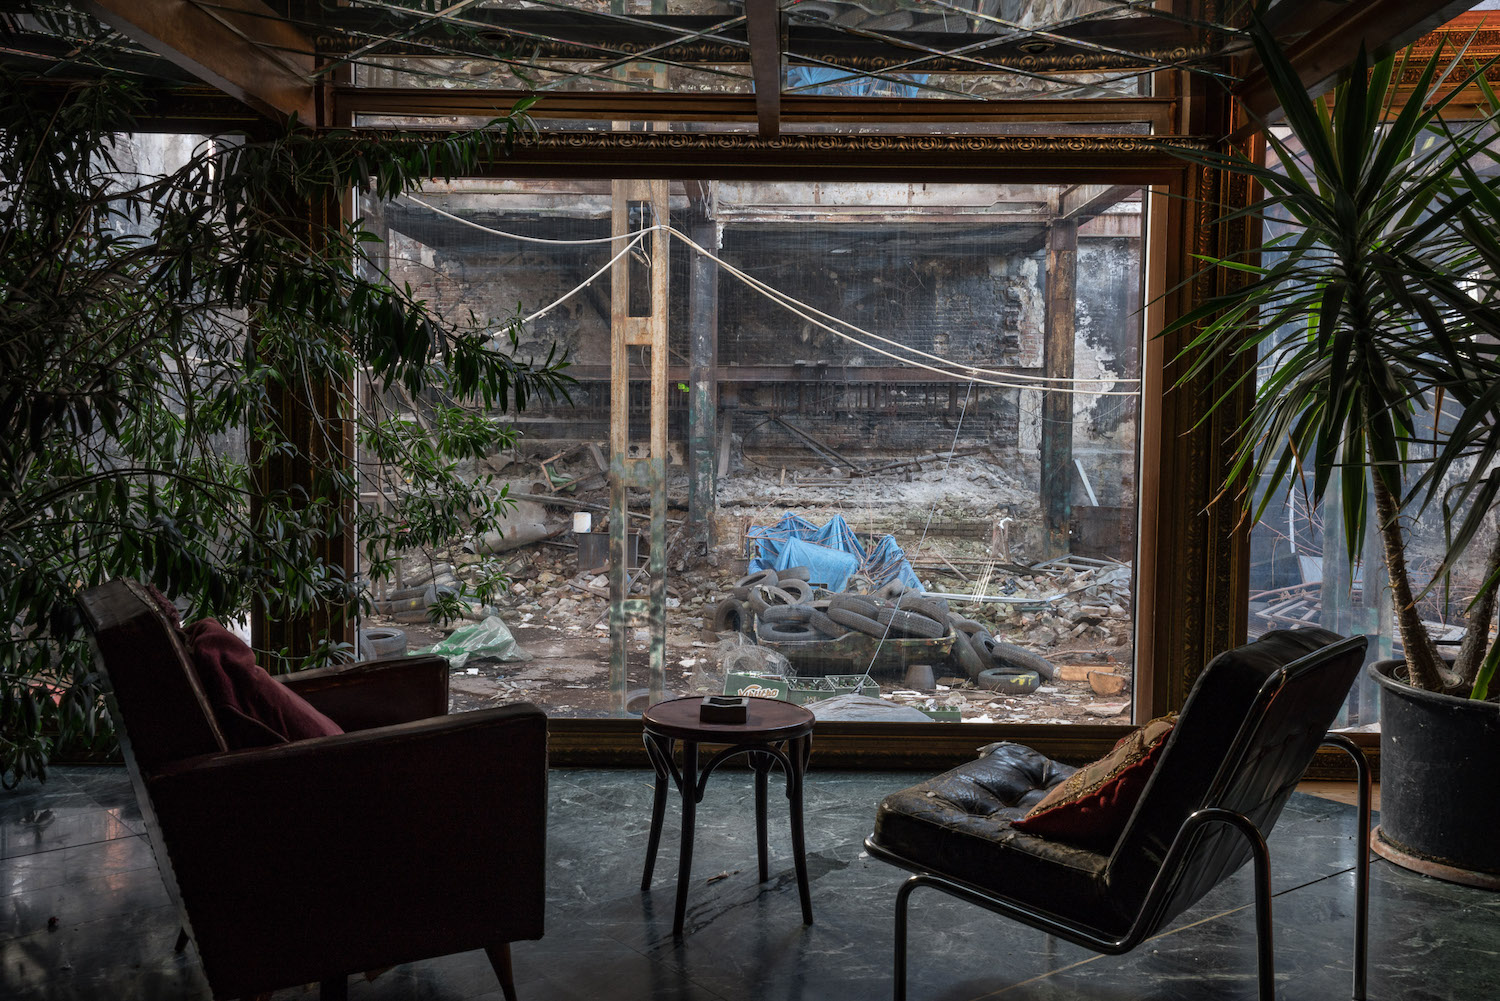 A window looking out to the undeveloped section of the Sugar Factory